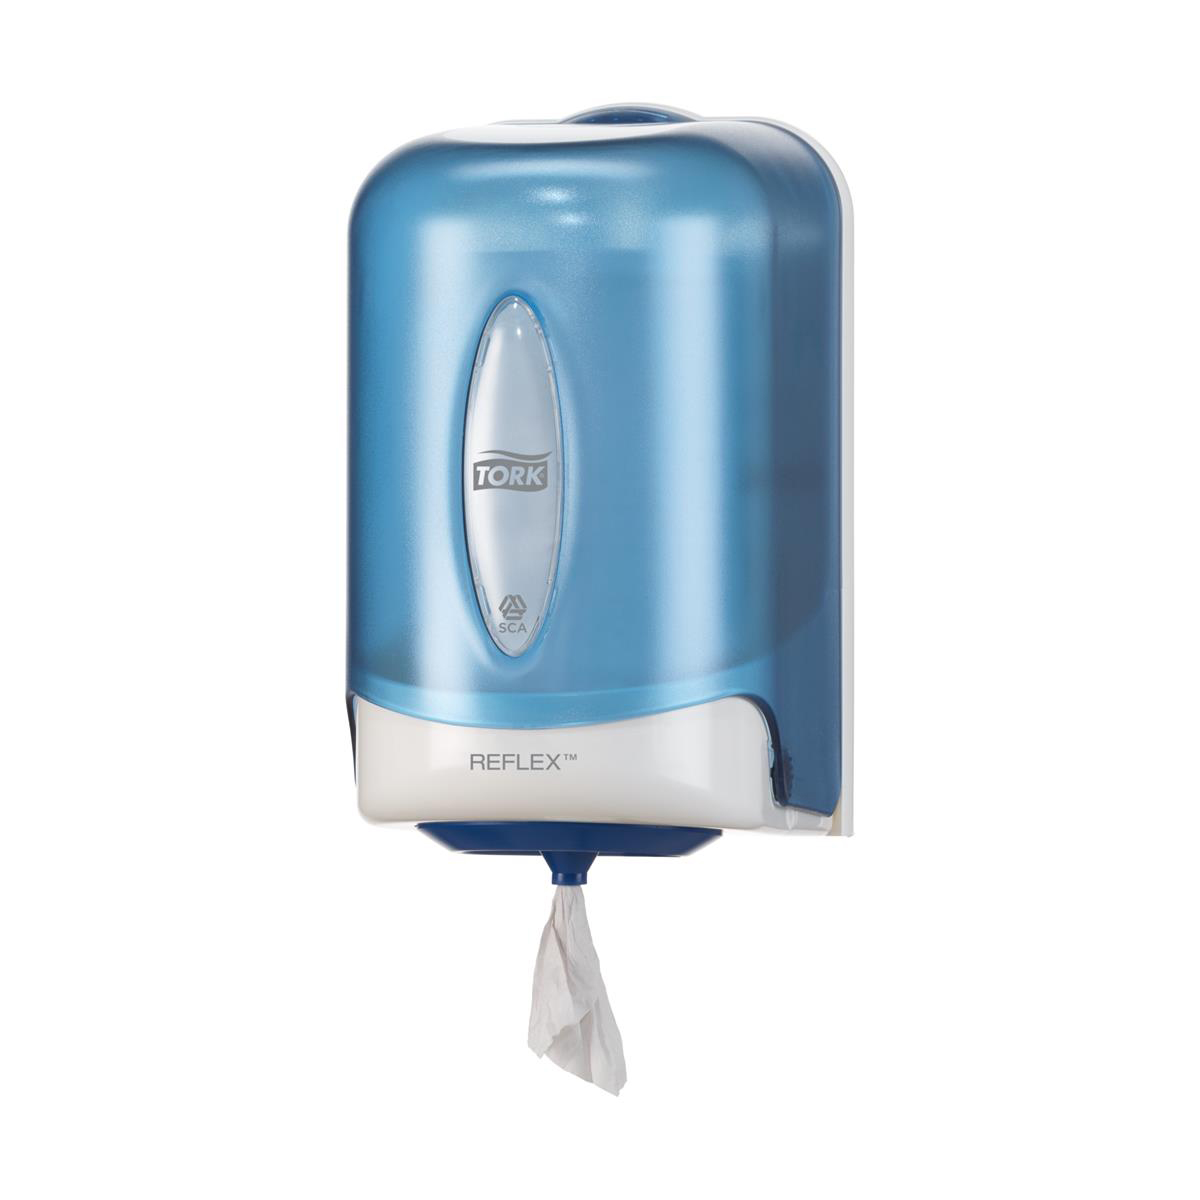 Tork Reflex Single Sheet Mini Centrefeed Dispenser W182xD210xH310mm Plastic Blue Ref 473167